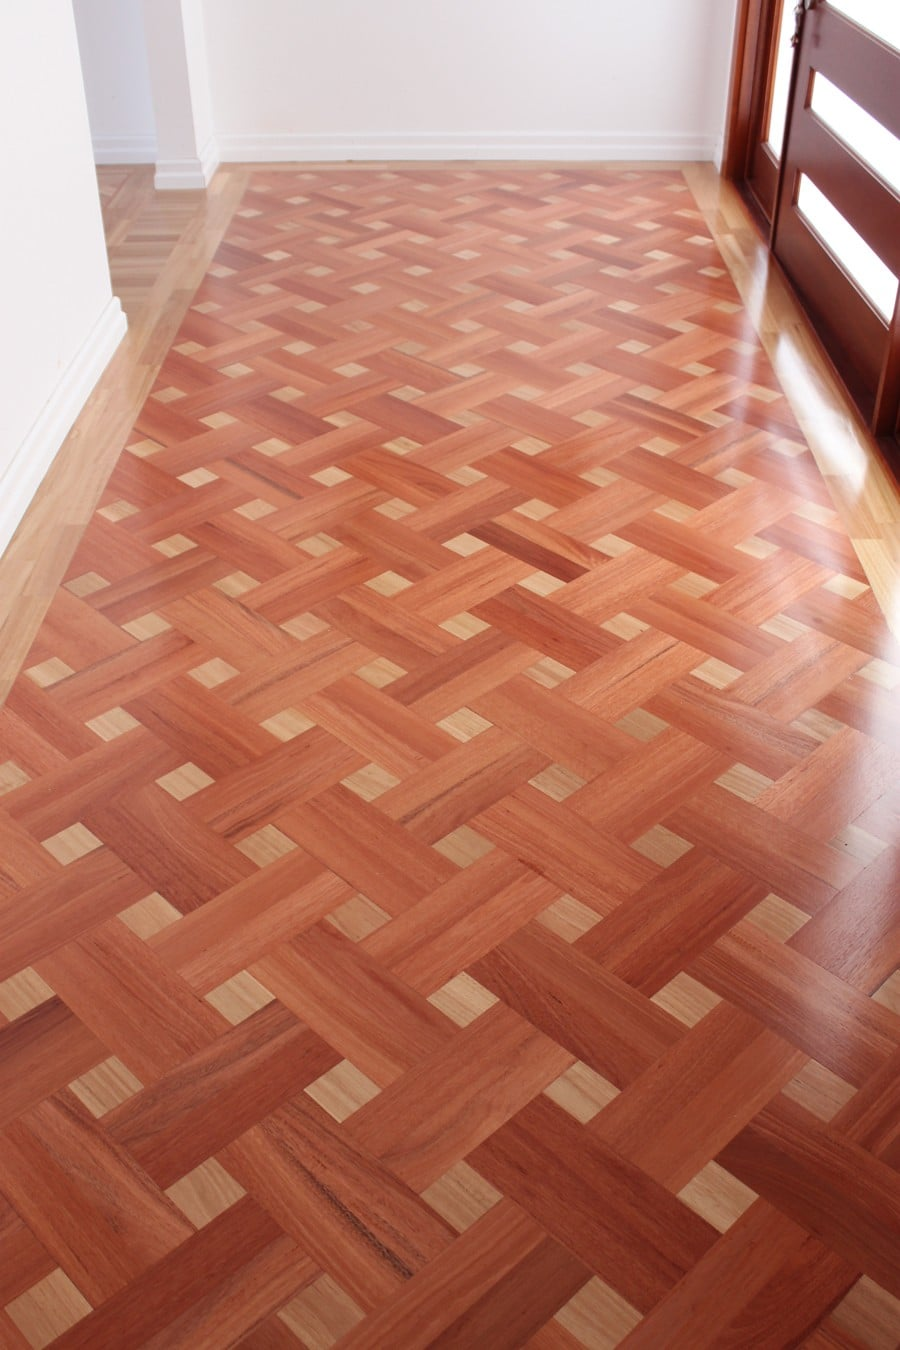 Sydney Blue Gum and Blackbutt block parquetry Benowa Waters Zealsea Timber Flooring Gold Coast Brisbane QLD Sydney Tweed Heads NSW Melbourne Vic Canberra ACT Adelaide SA